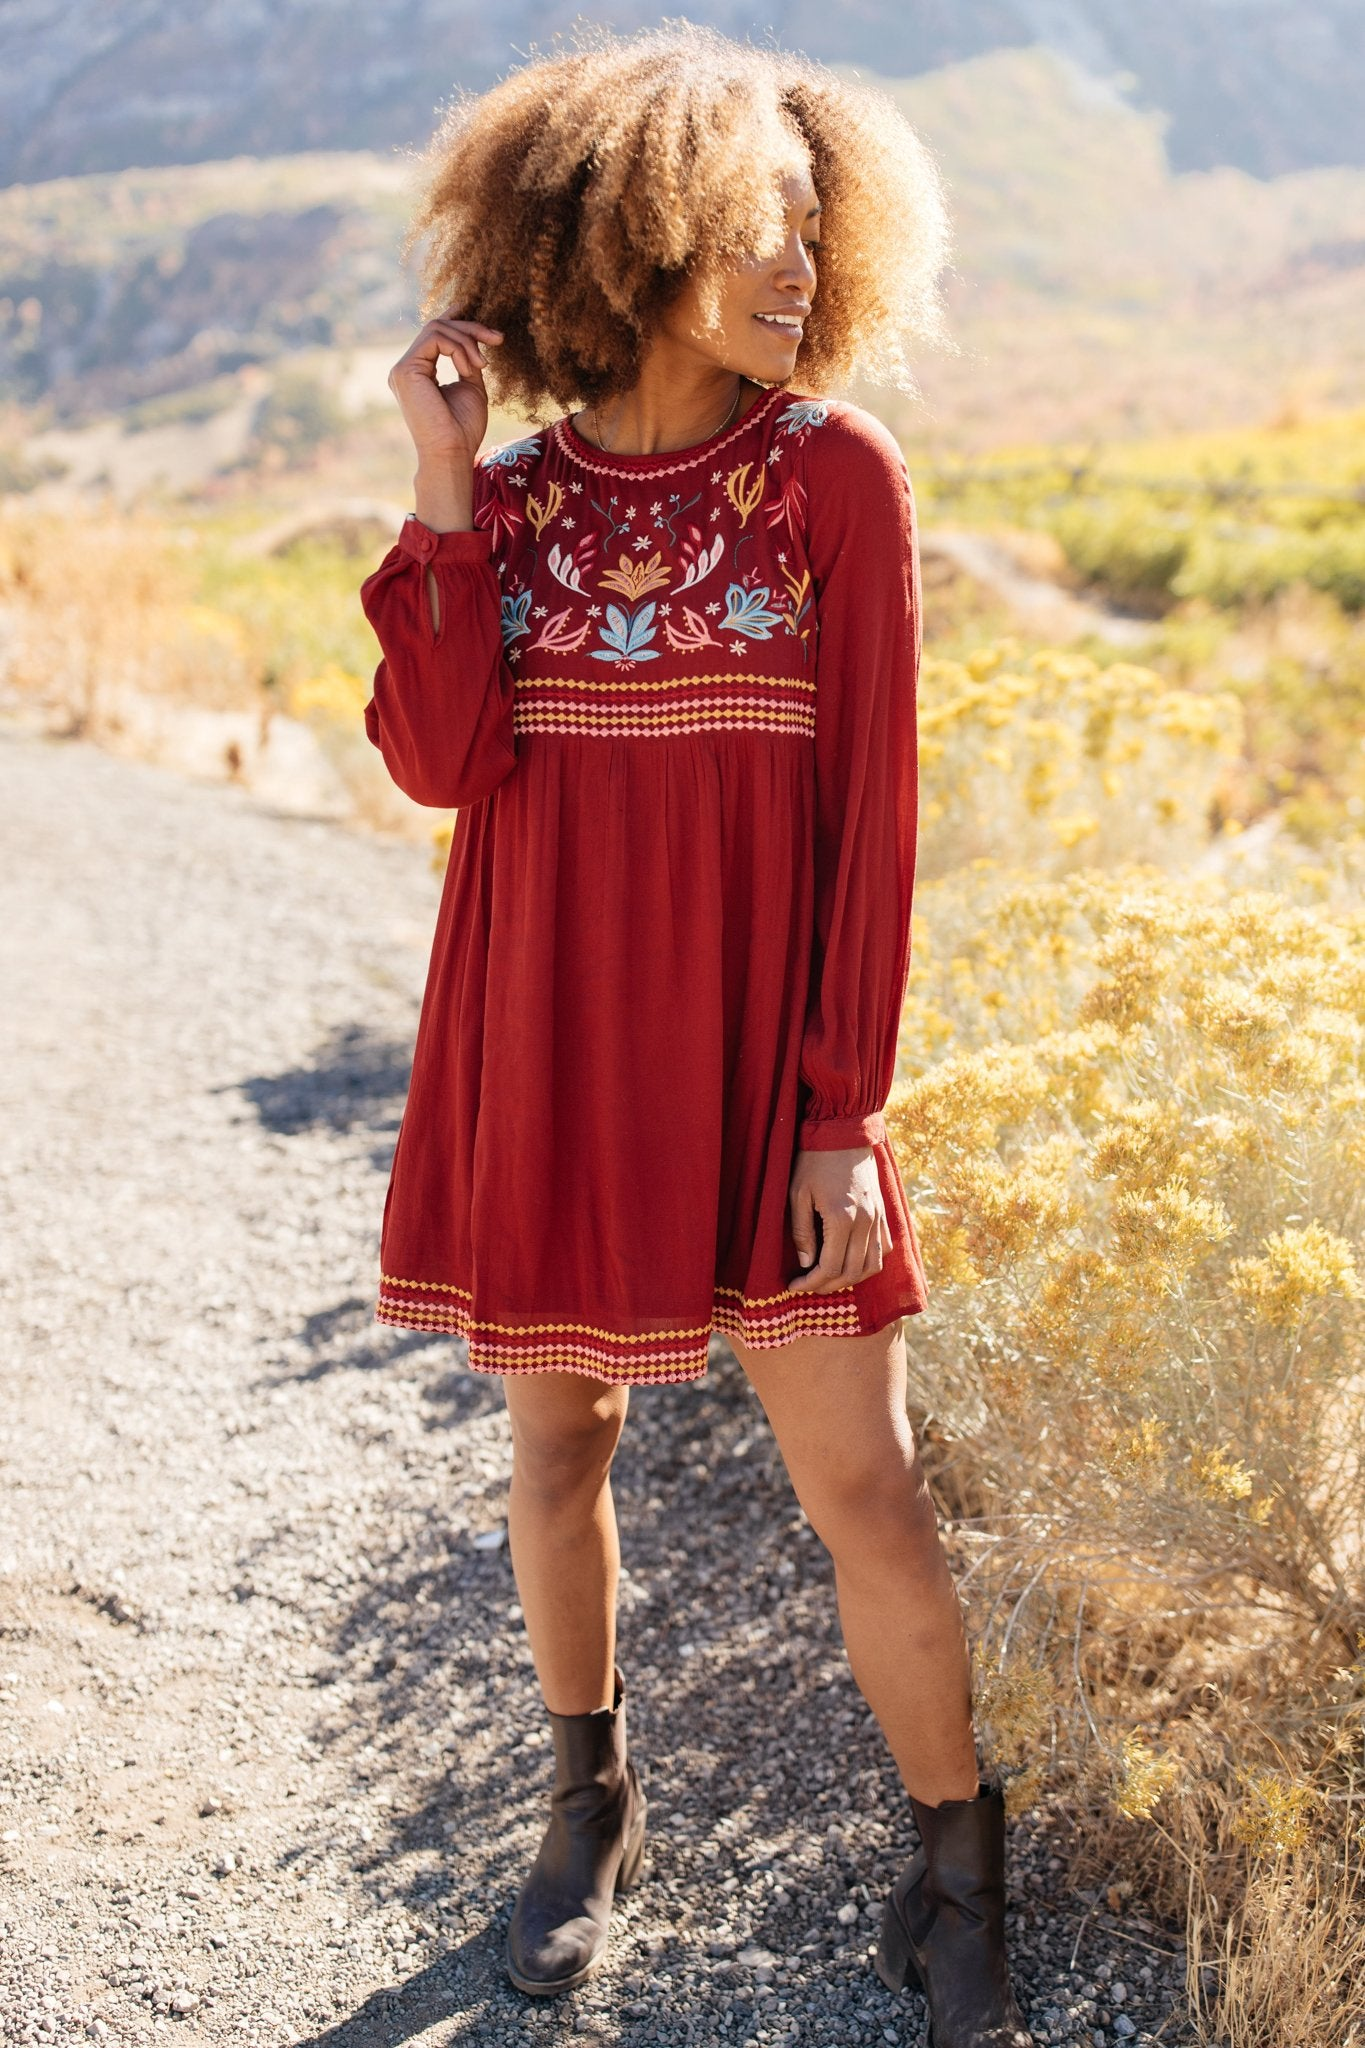 The Fall Embroidery Dress